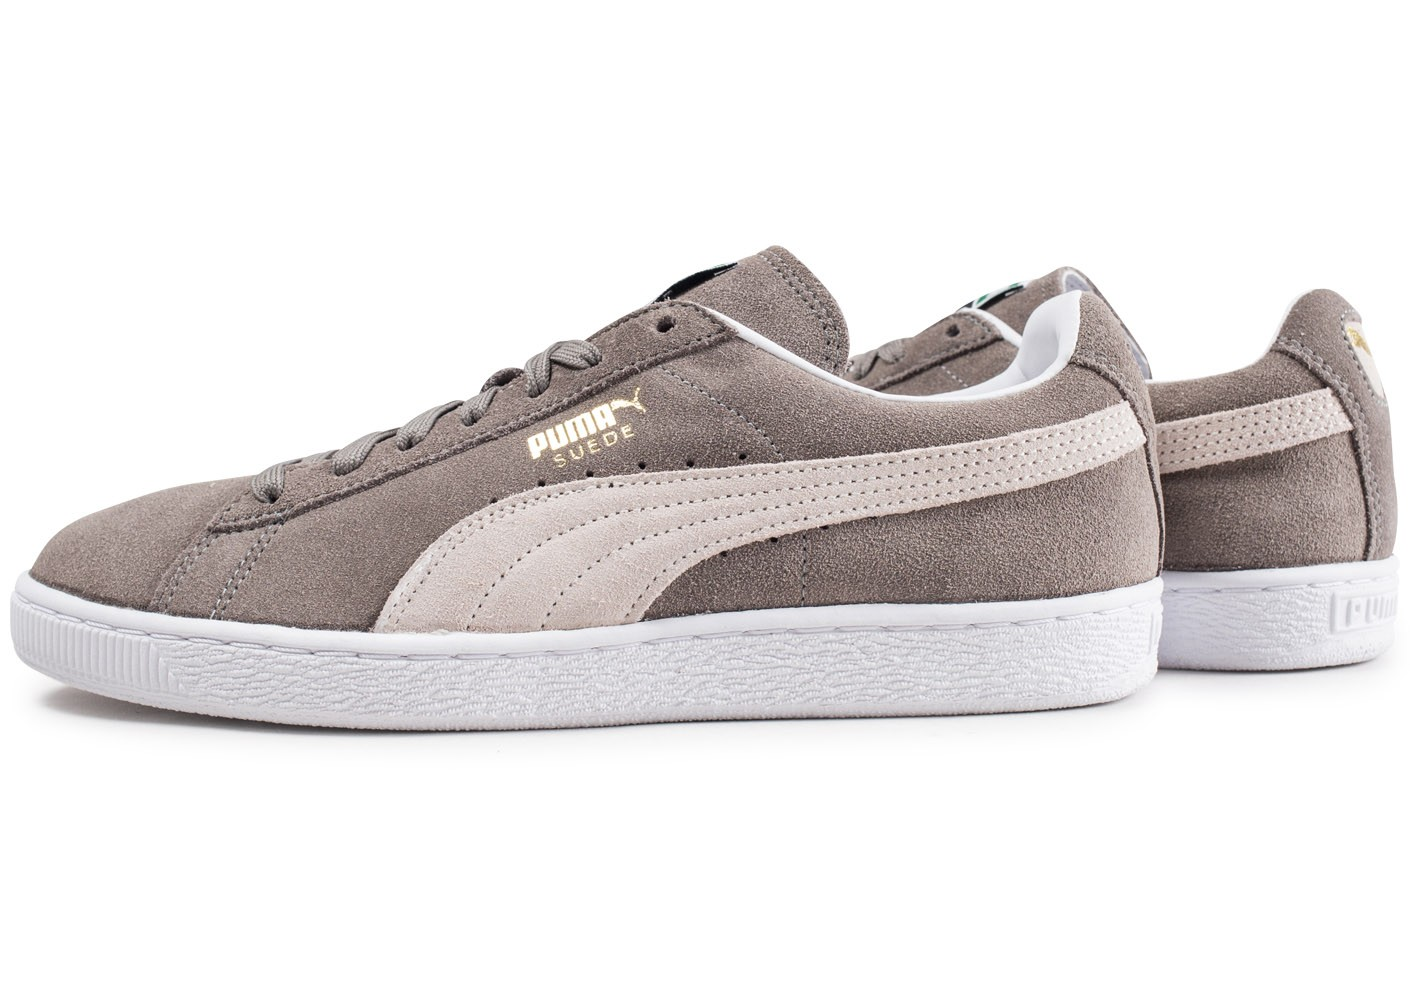 taille 40 a4516 90455 Puma Suede Classic Grise - Chaussures Baskets homme - Chausport